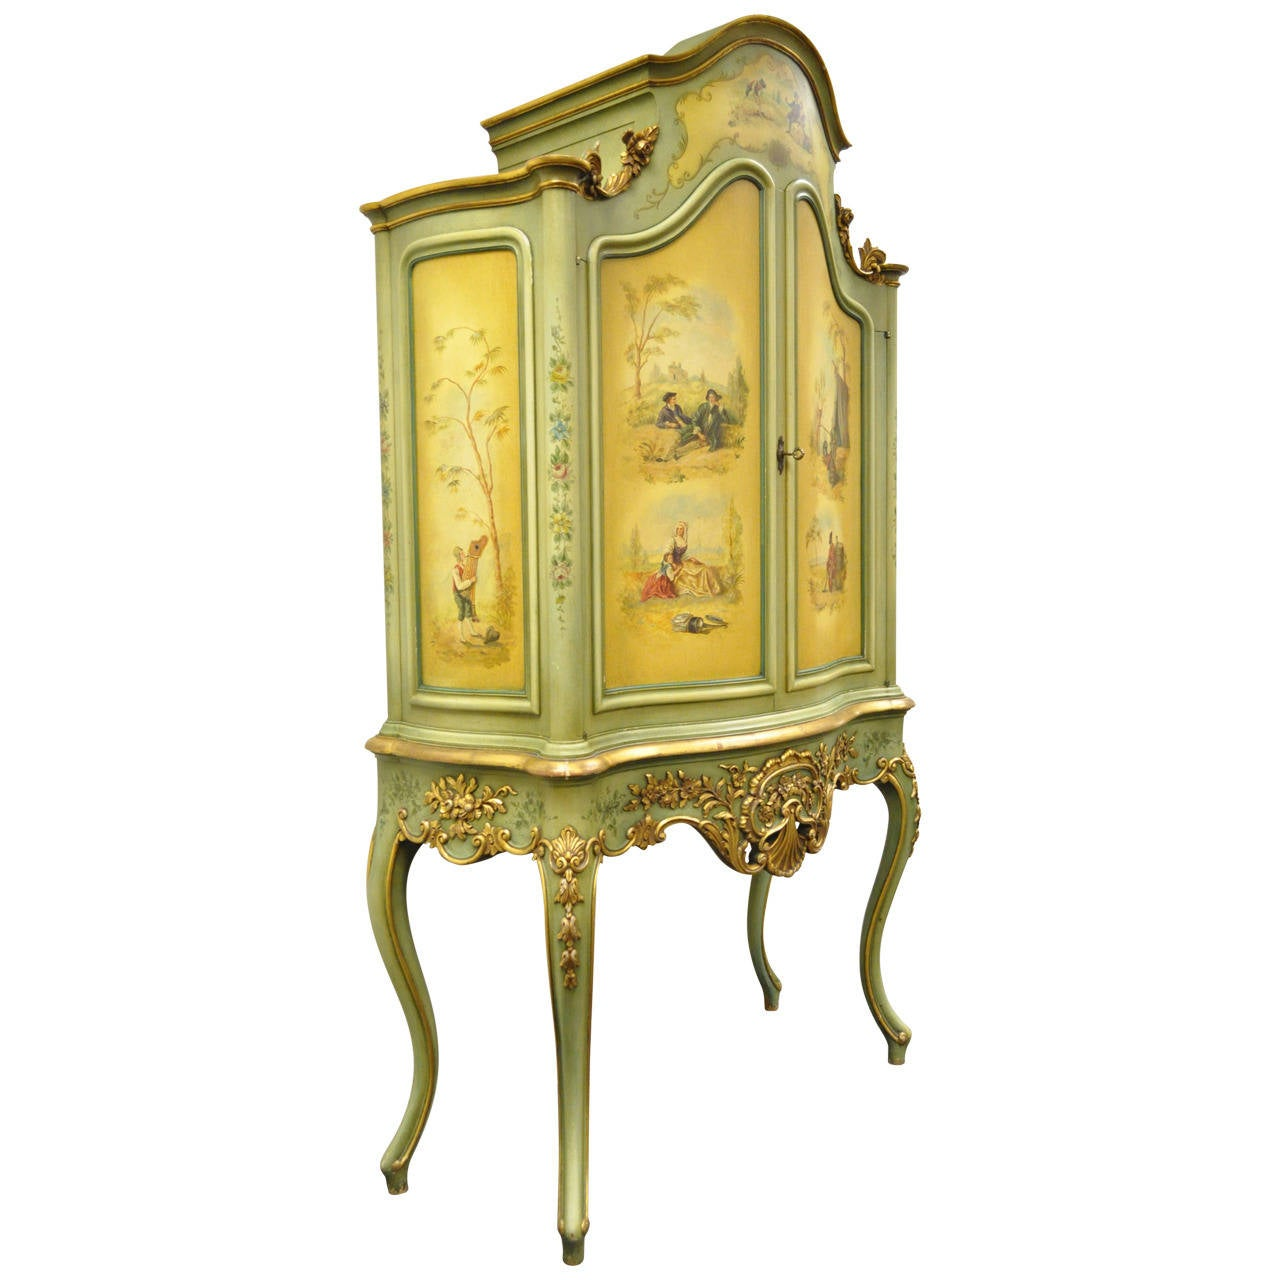 Large Vernis Martin curved glass Gilt Curio Cabinet at 1stdibs